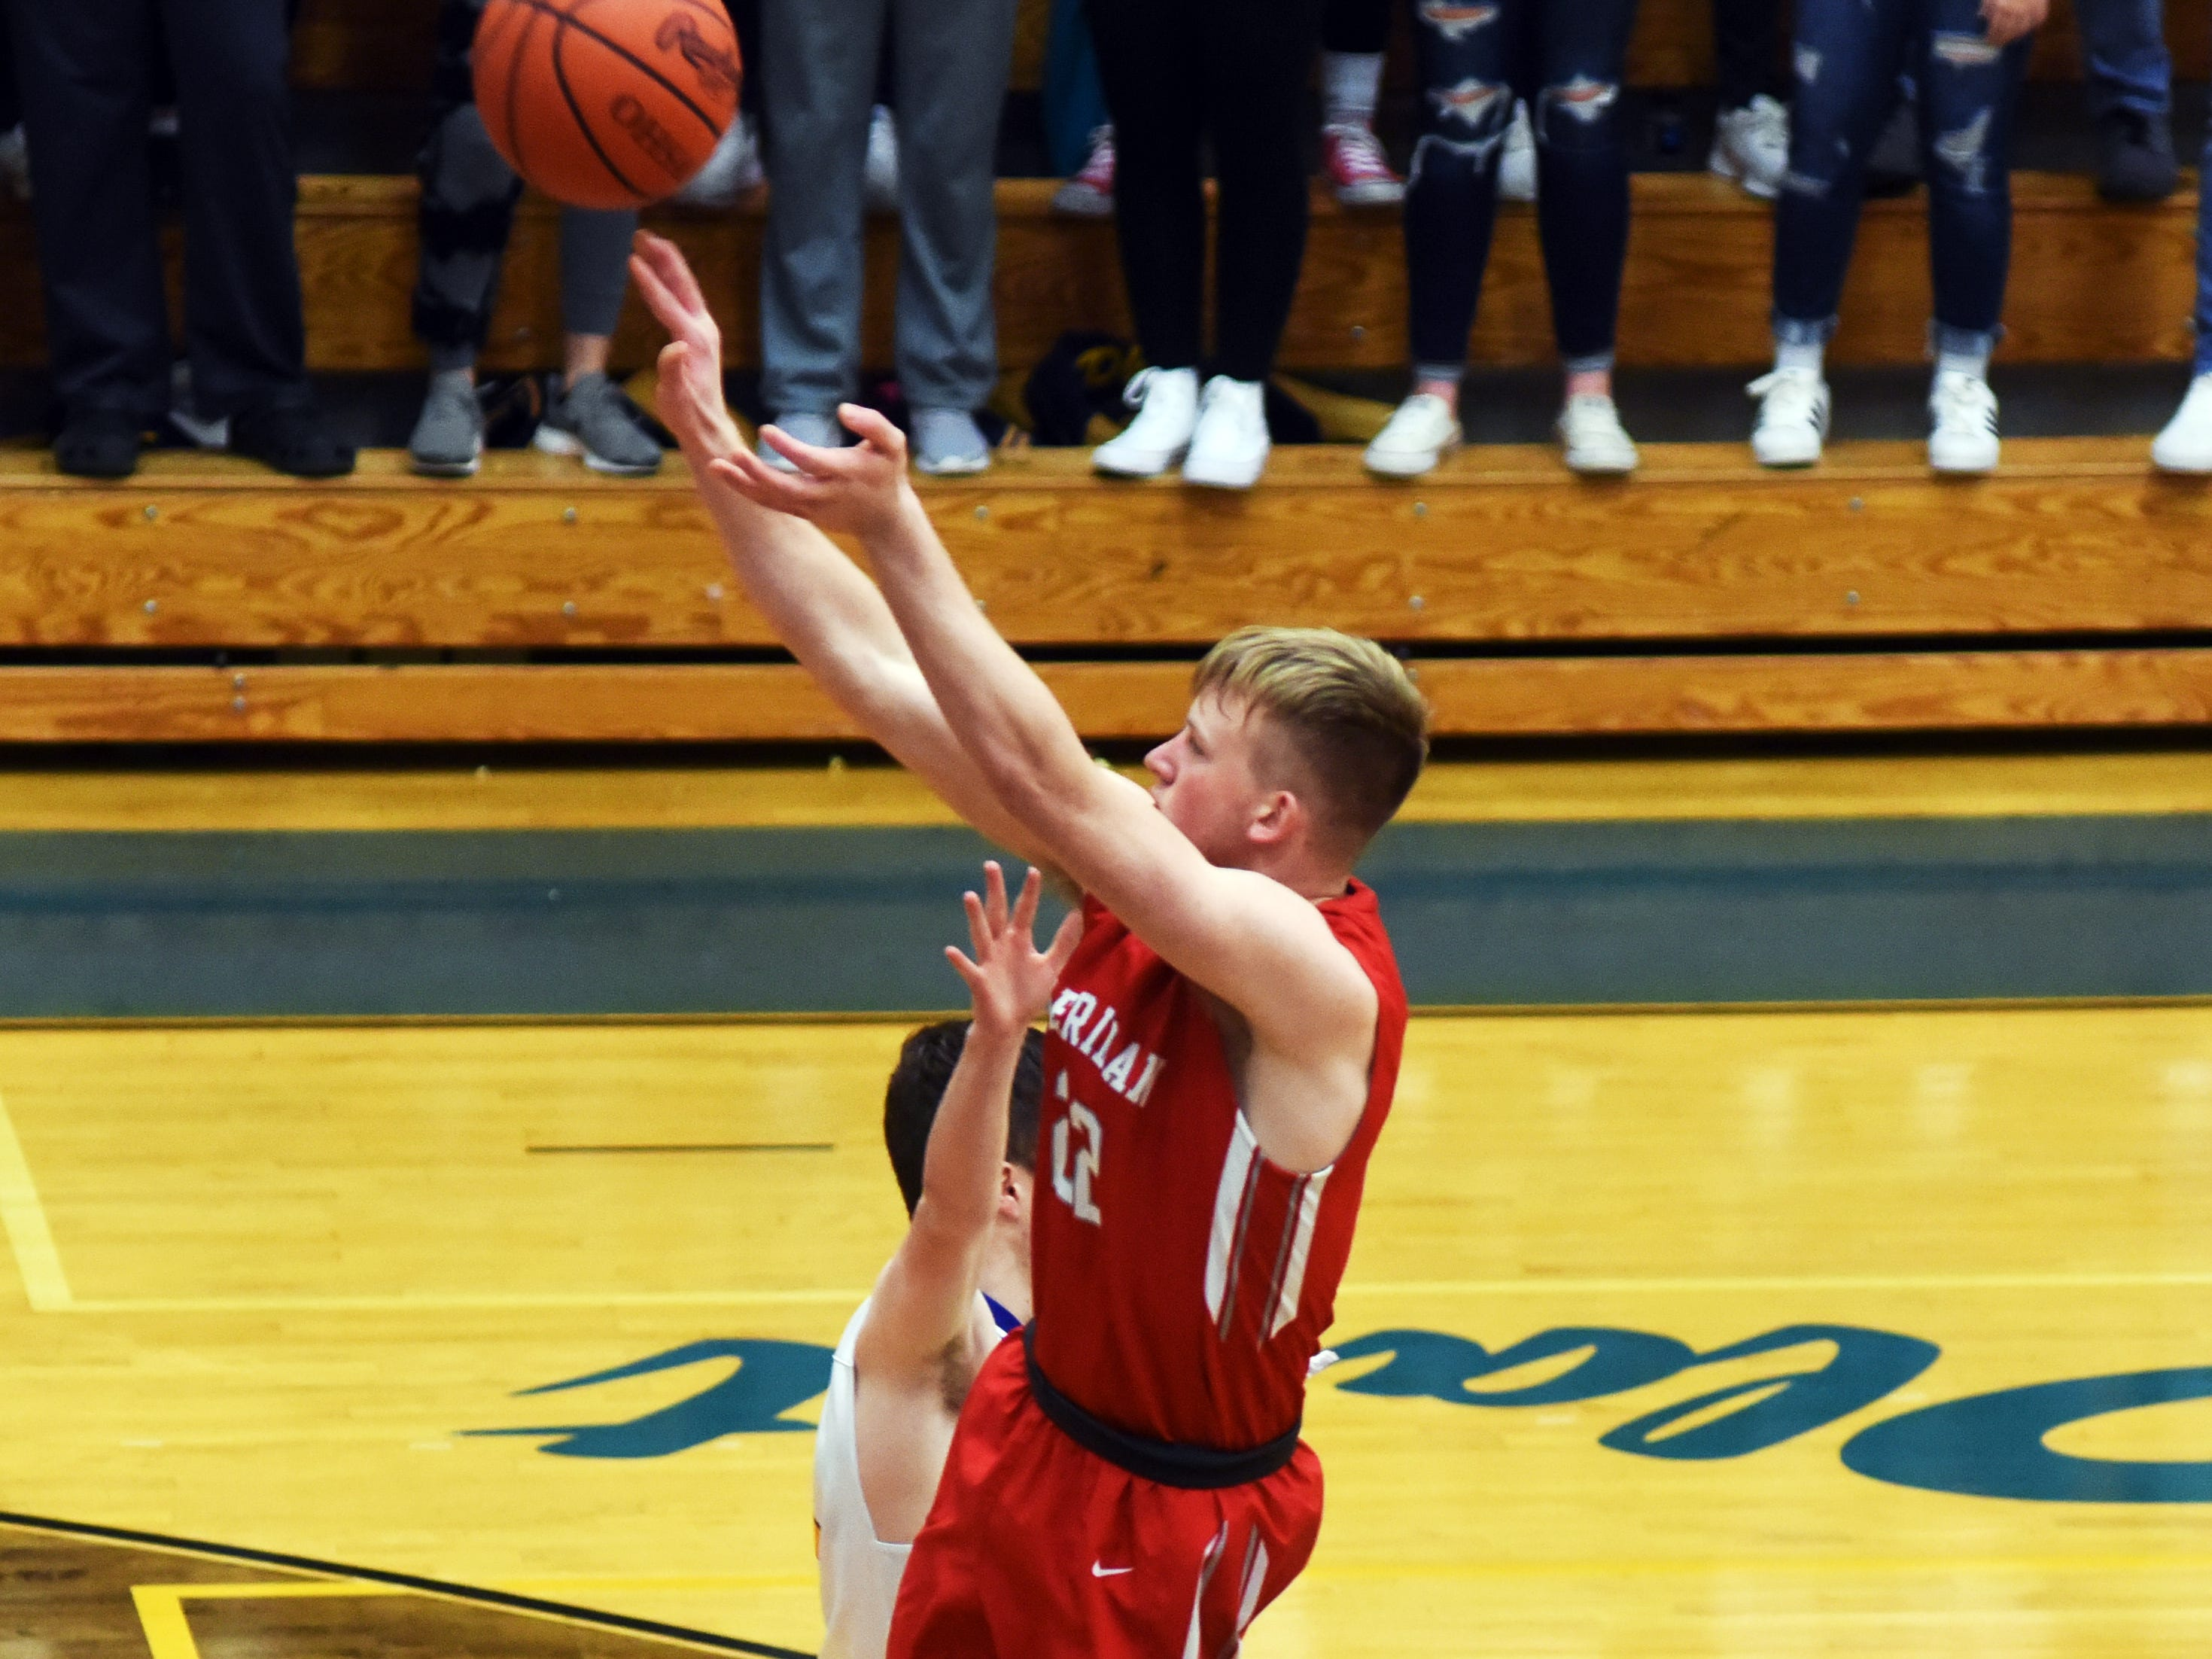 Sheridan's Landen Russell shoots a jumper against Philo.